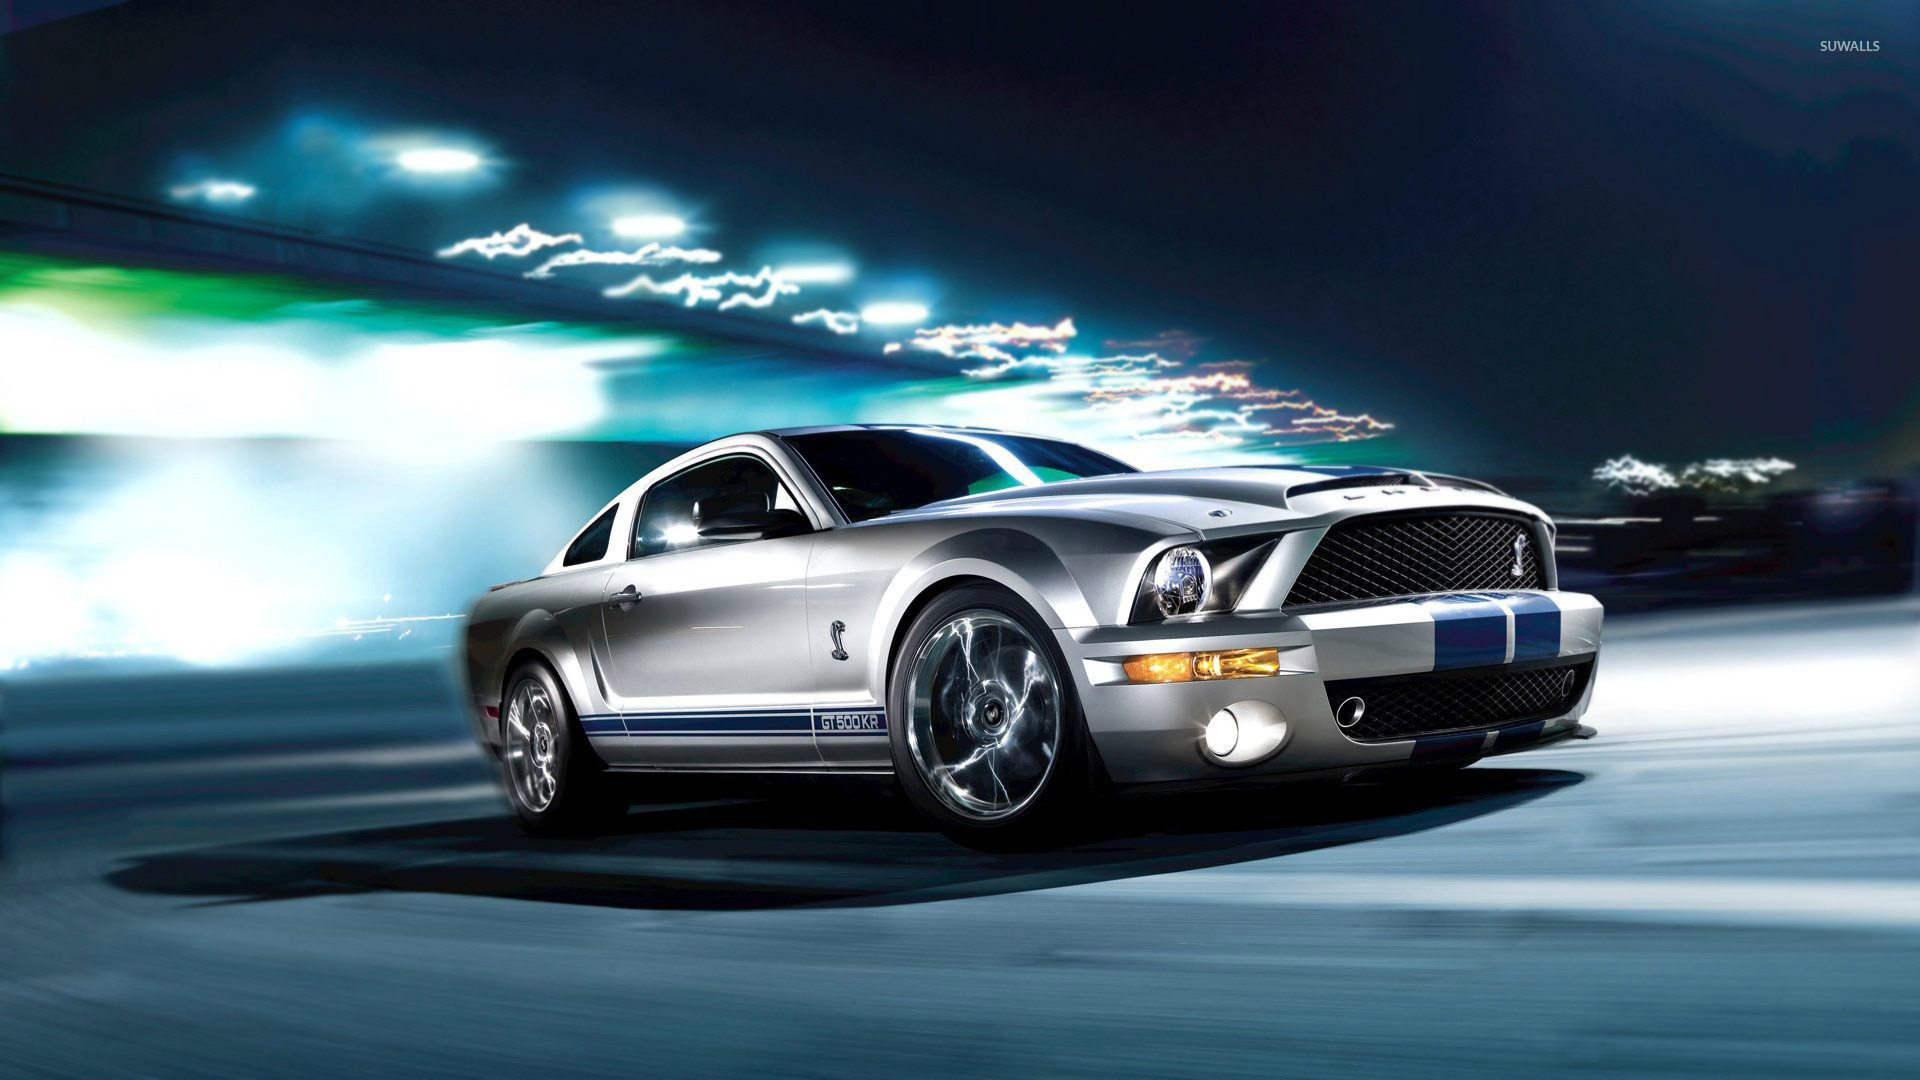 Shelby GT500 wallpaper  Car wallpapers  15216